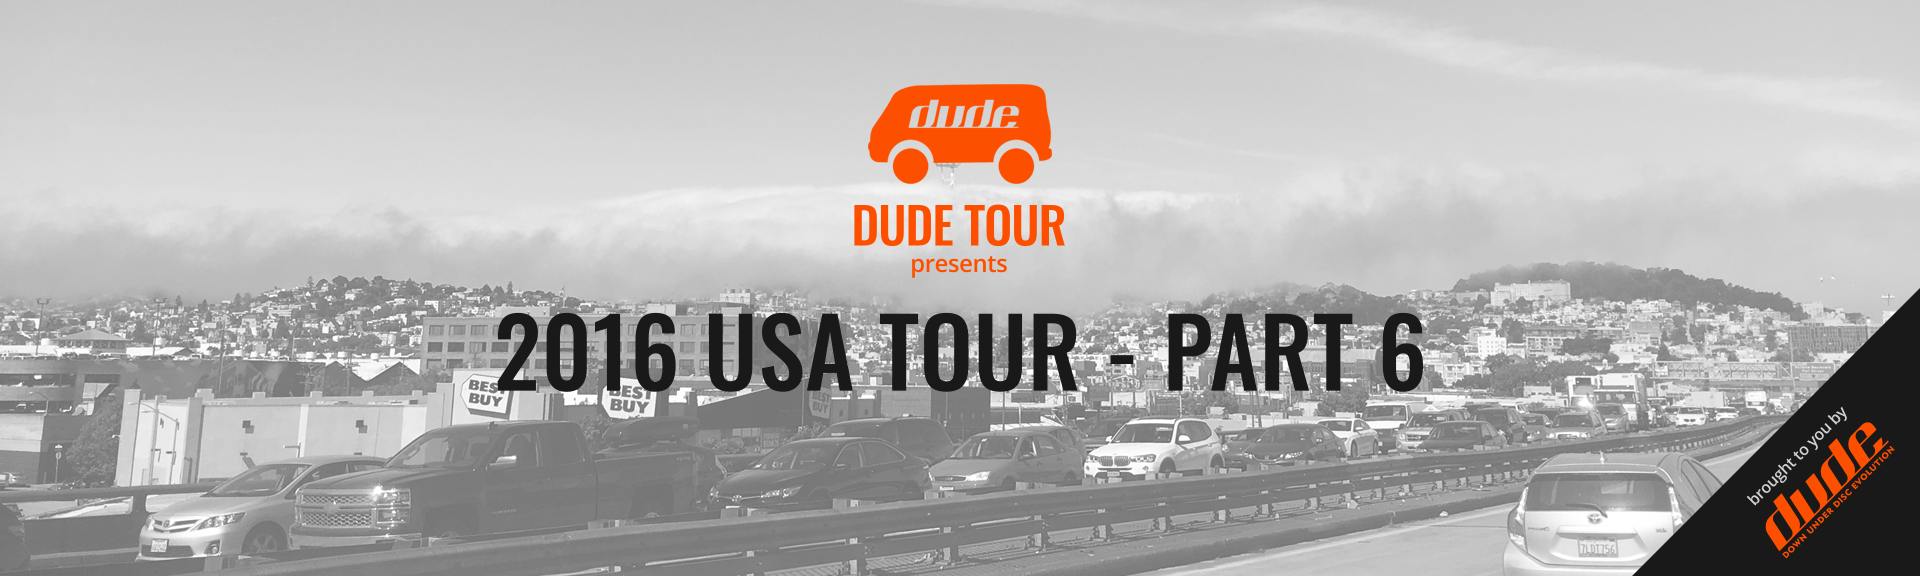 Dude Tour - 2016 USA Tour - PART 6